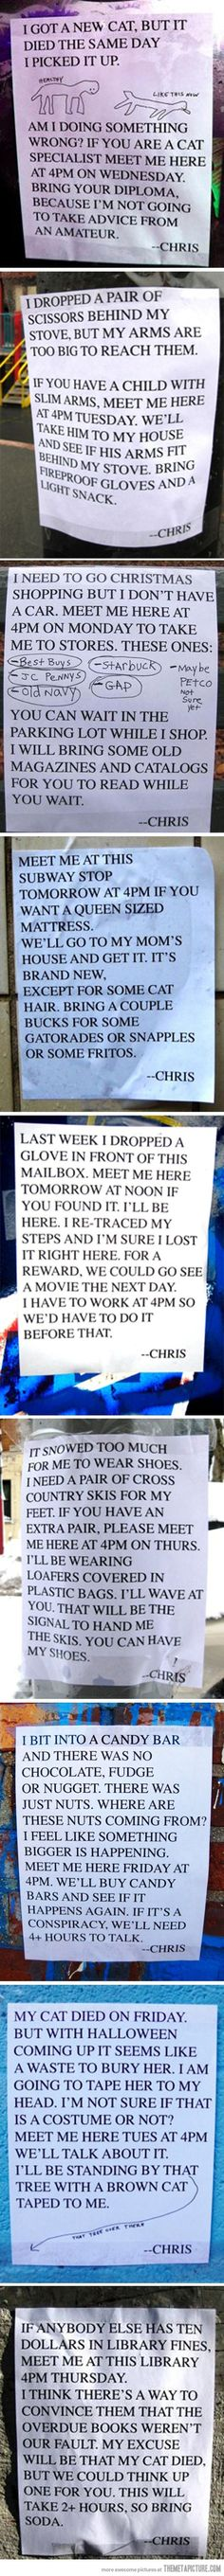 funny-street-note-Chris-weird